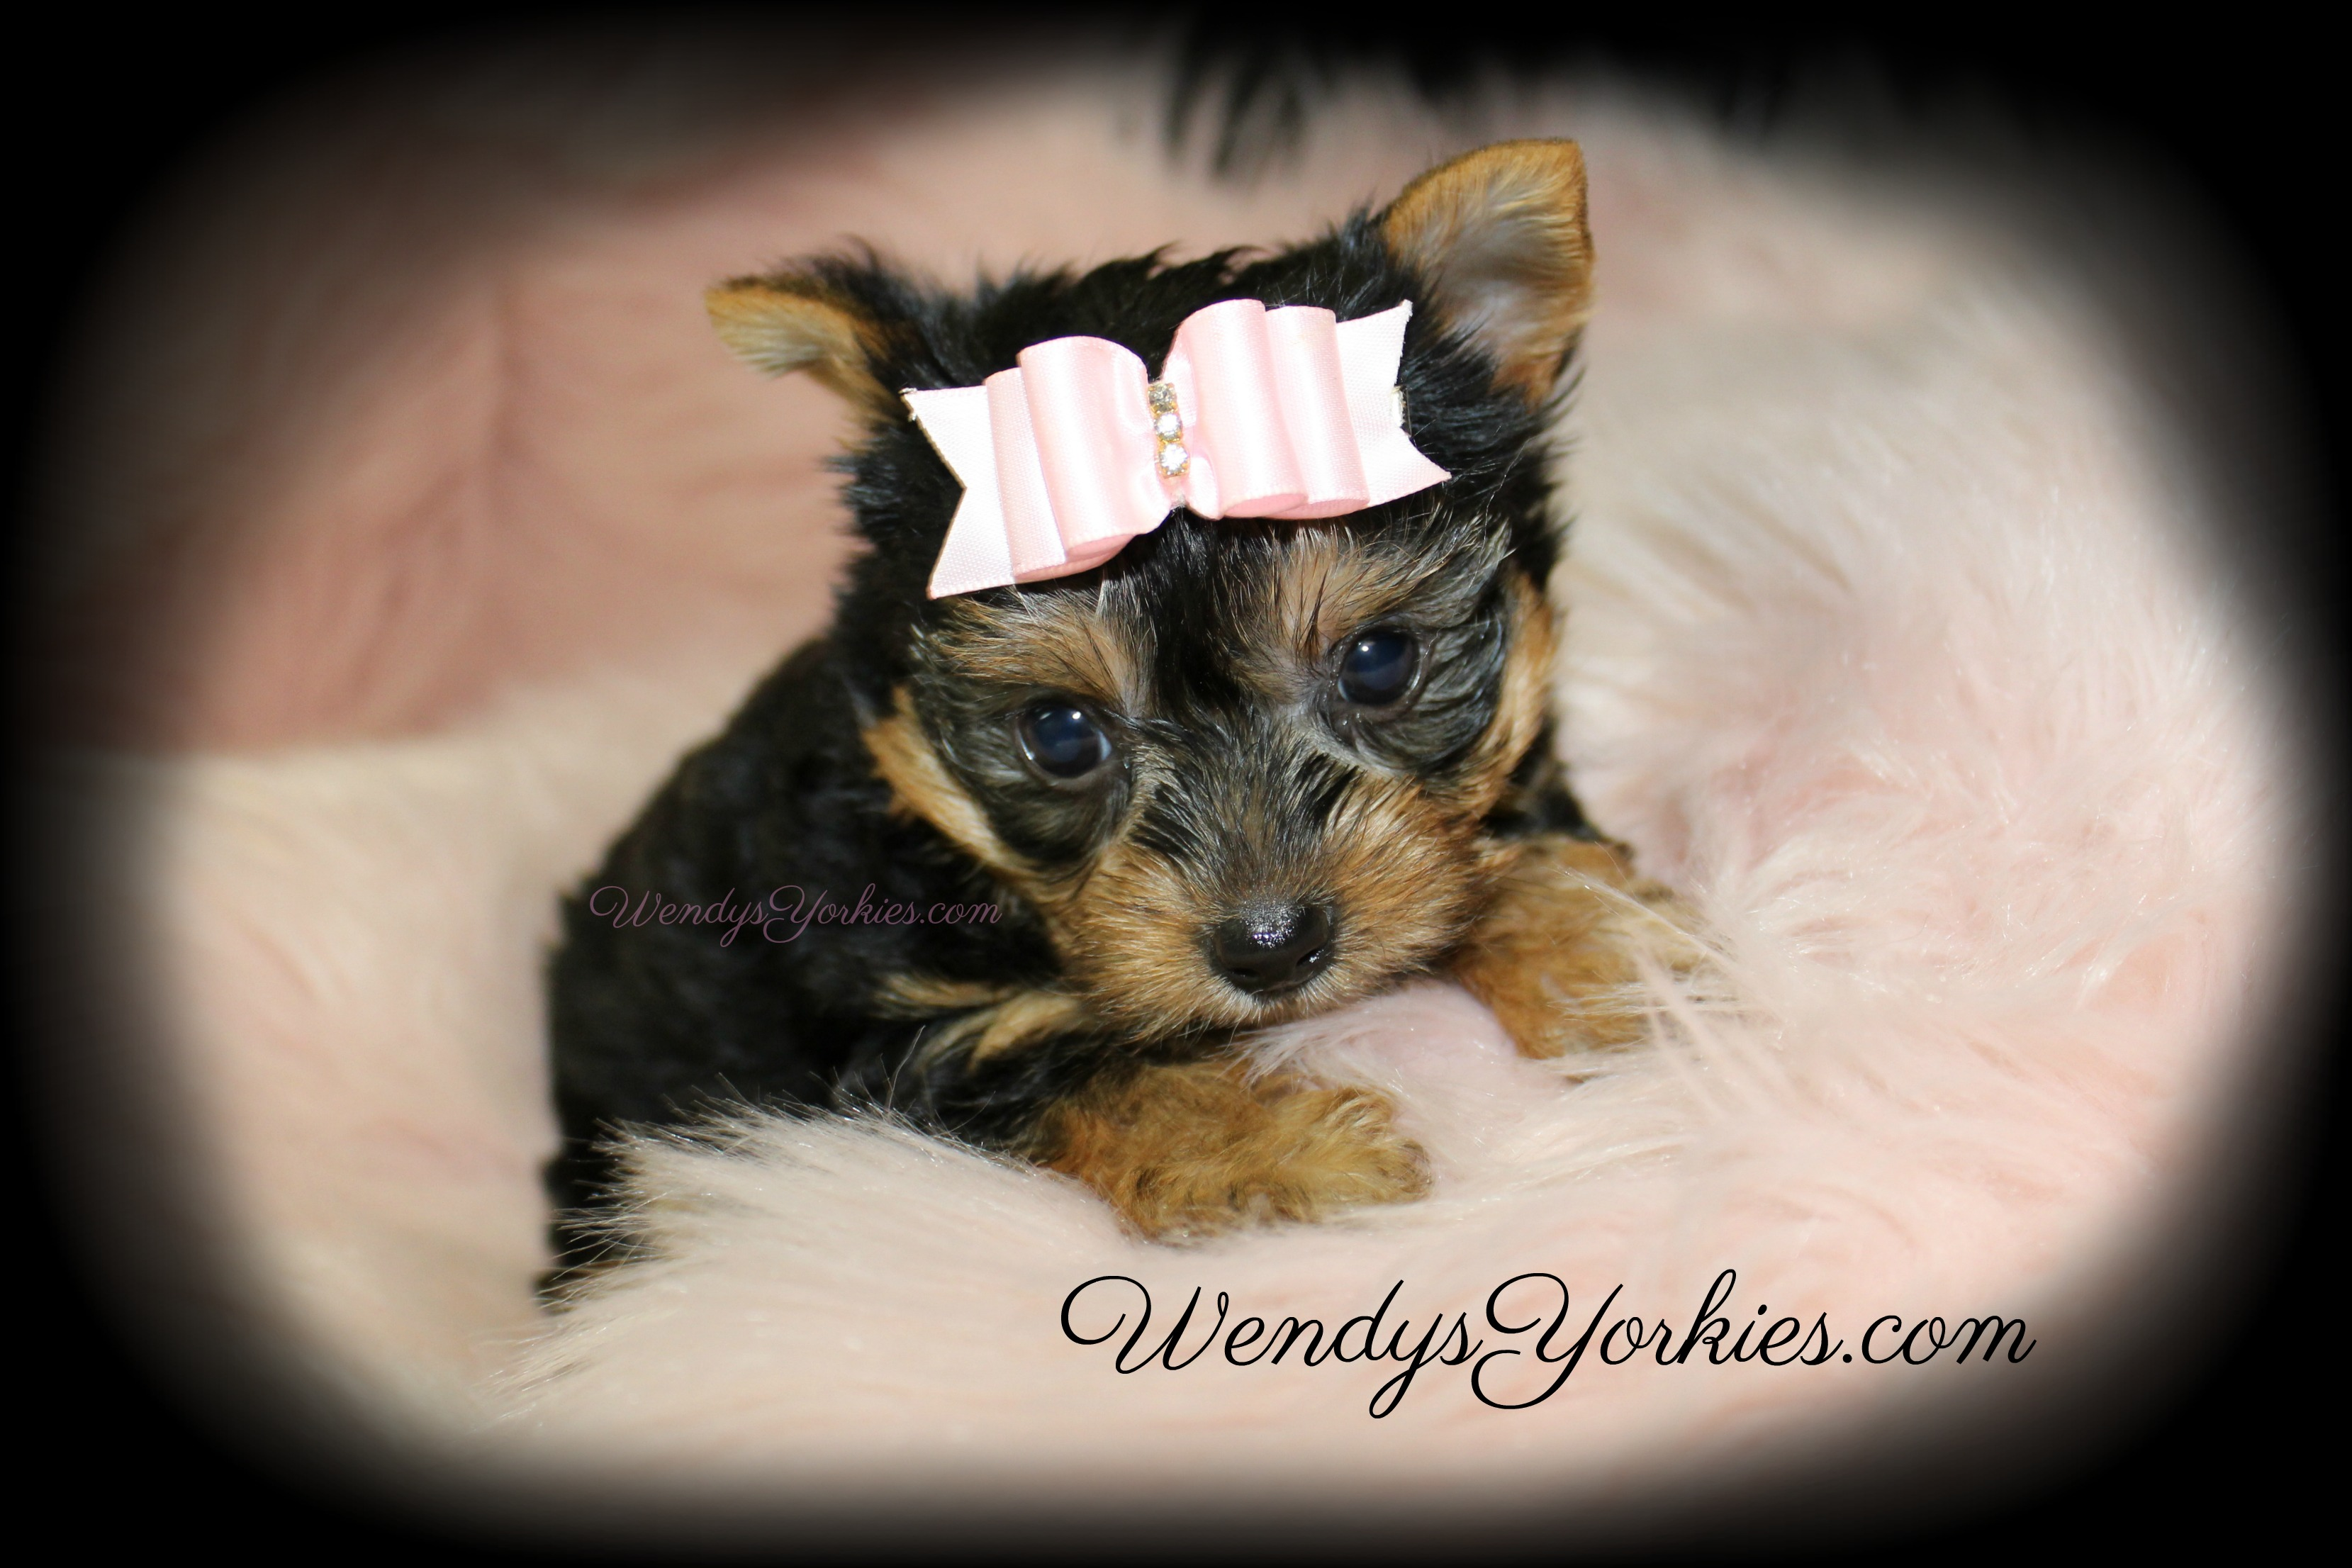 Tiny Teacup Female Yorkie puppy for sale, WendysYorkies.com, Lexie f2